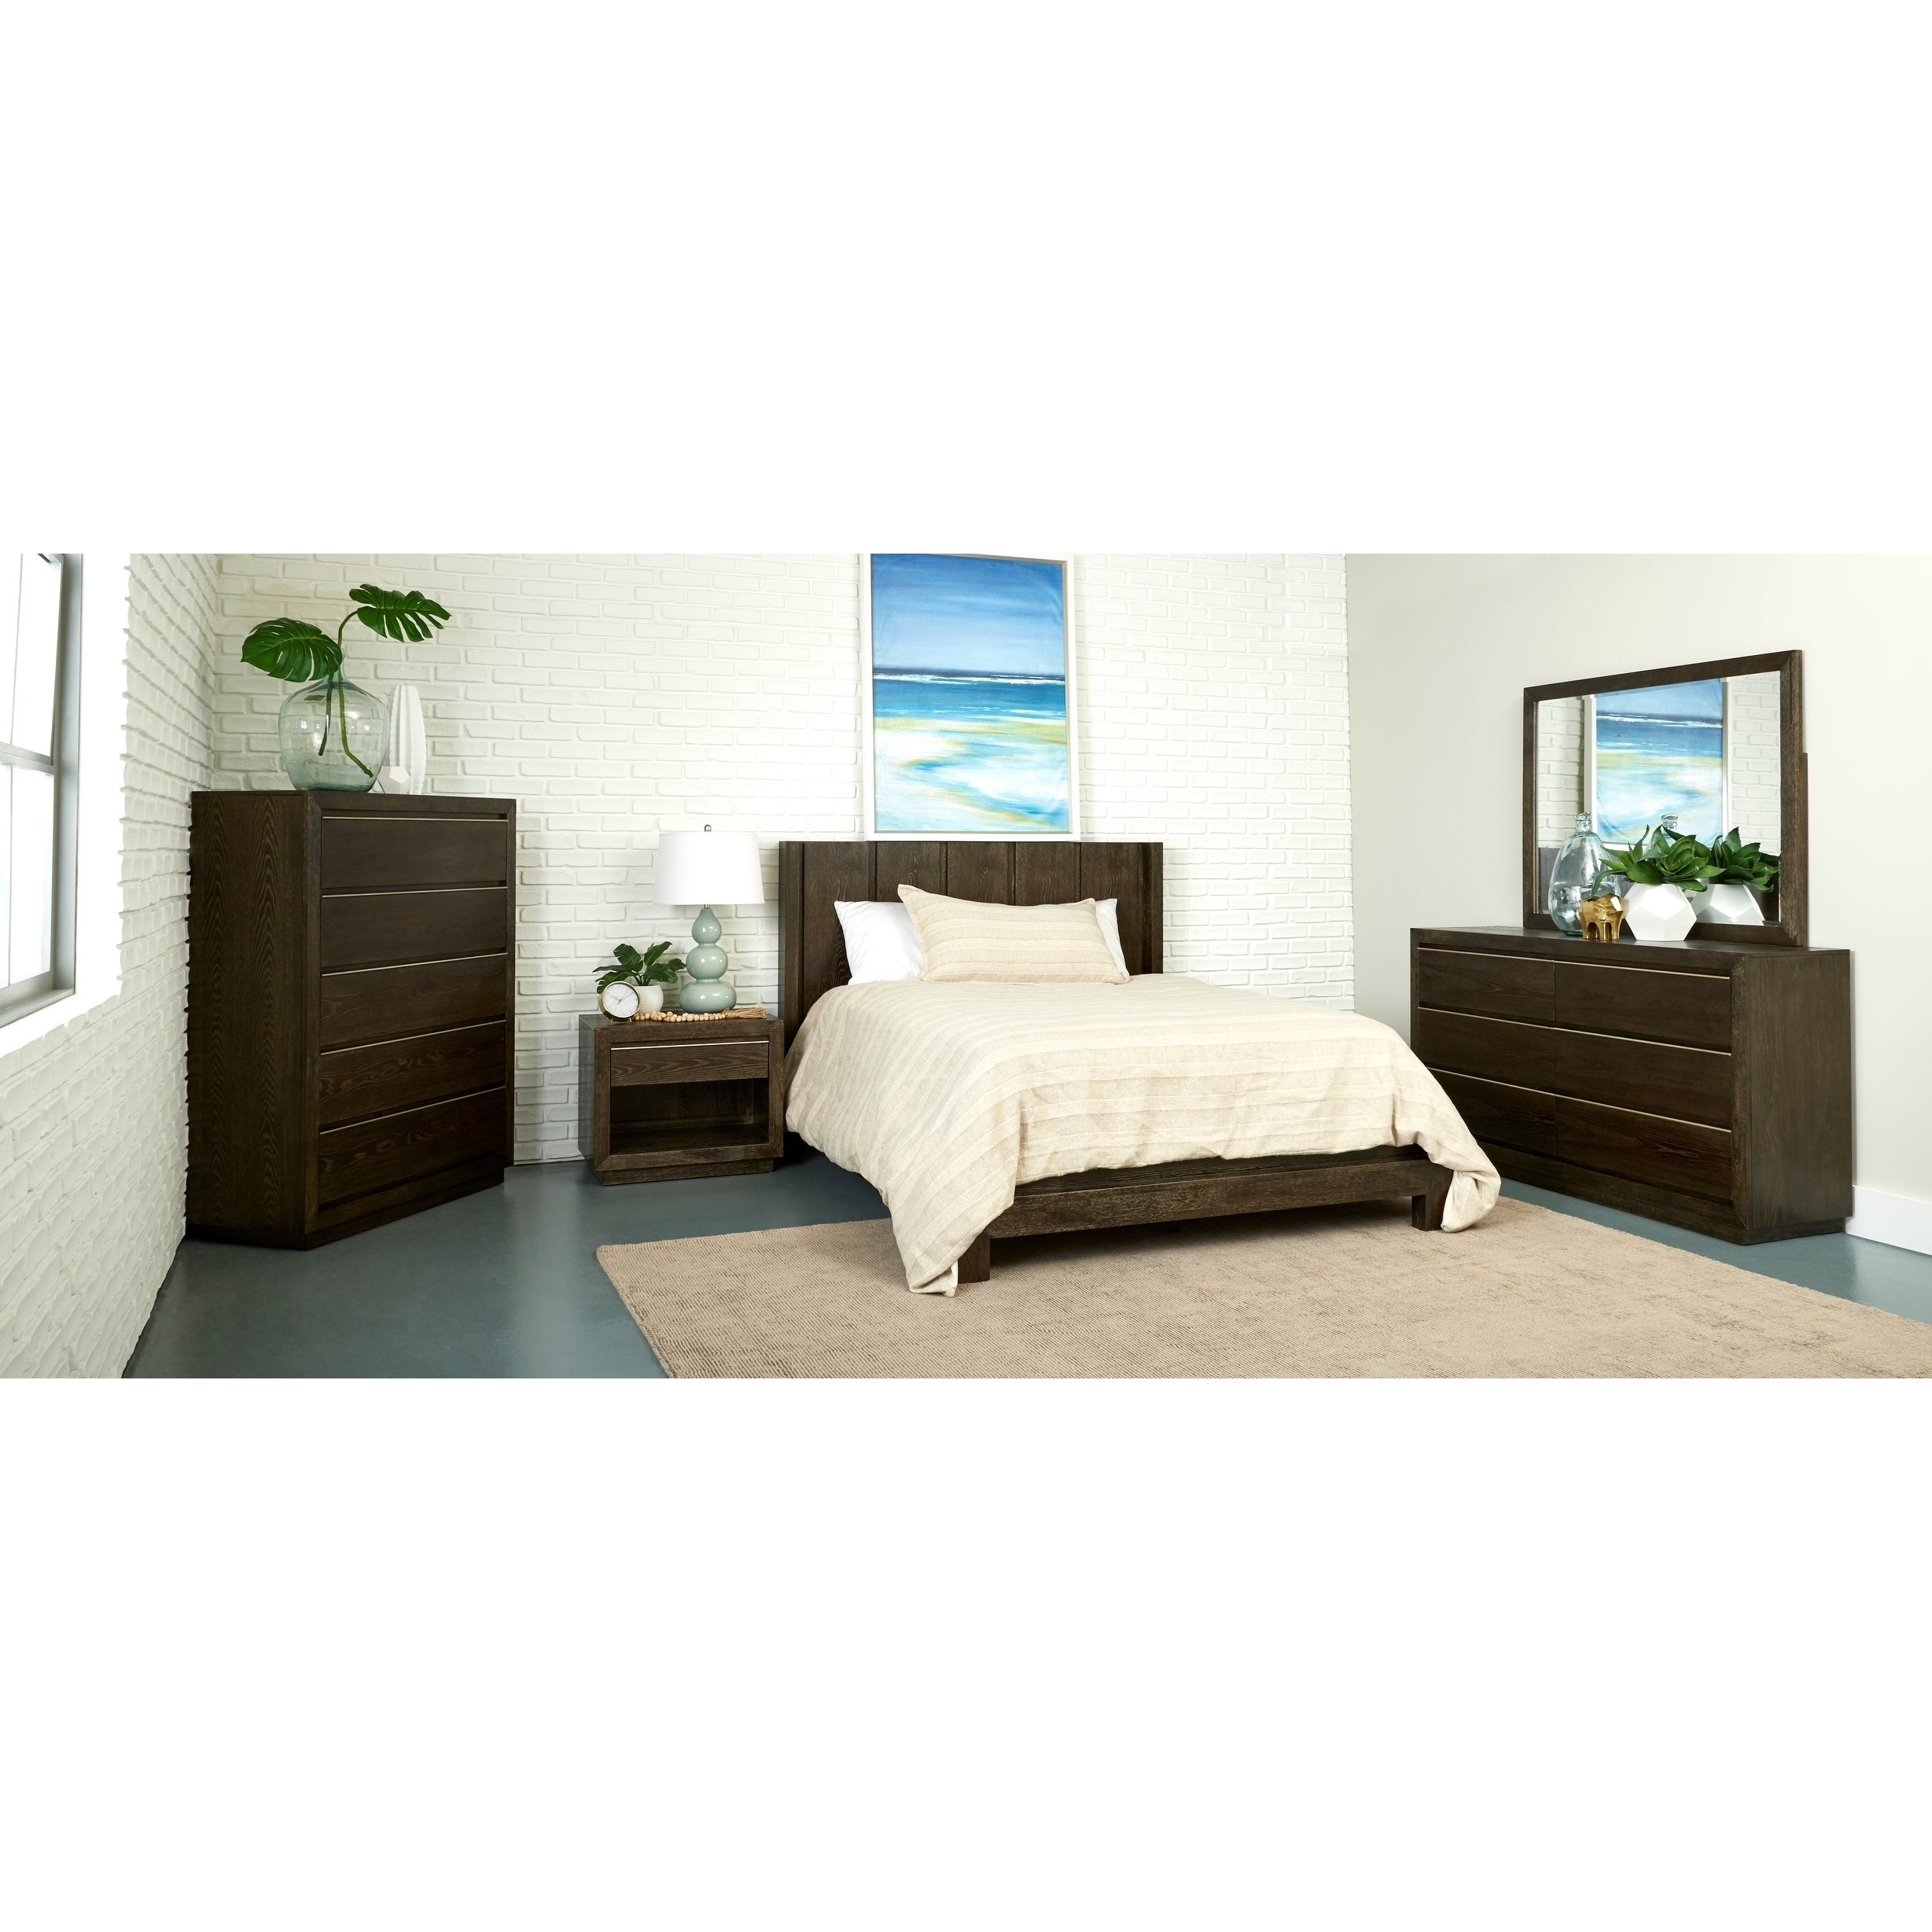 Picture of: Matteo Queen Size Platform Bed Overstock 28867308 King